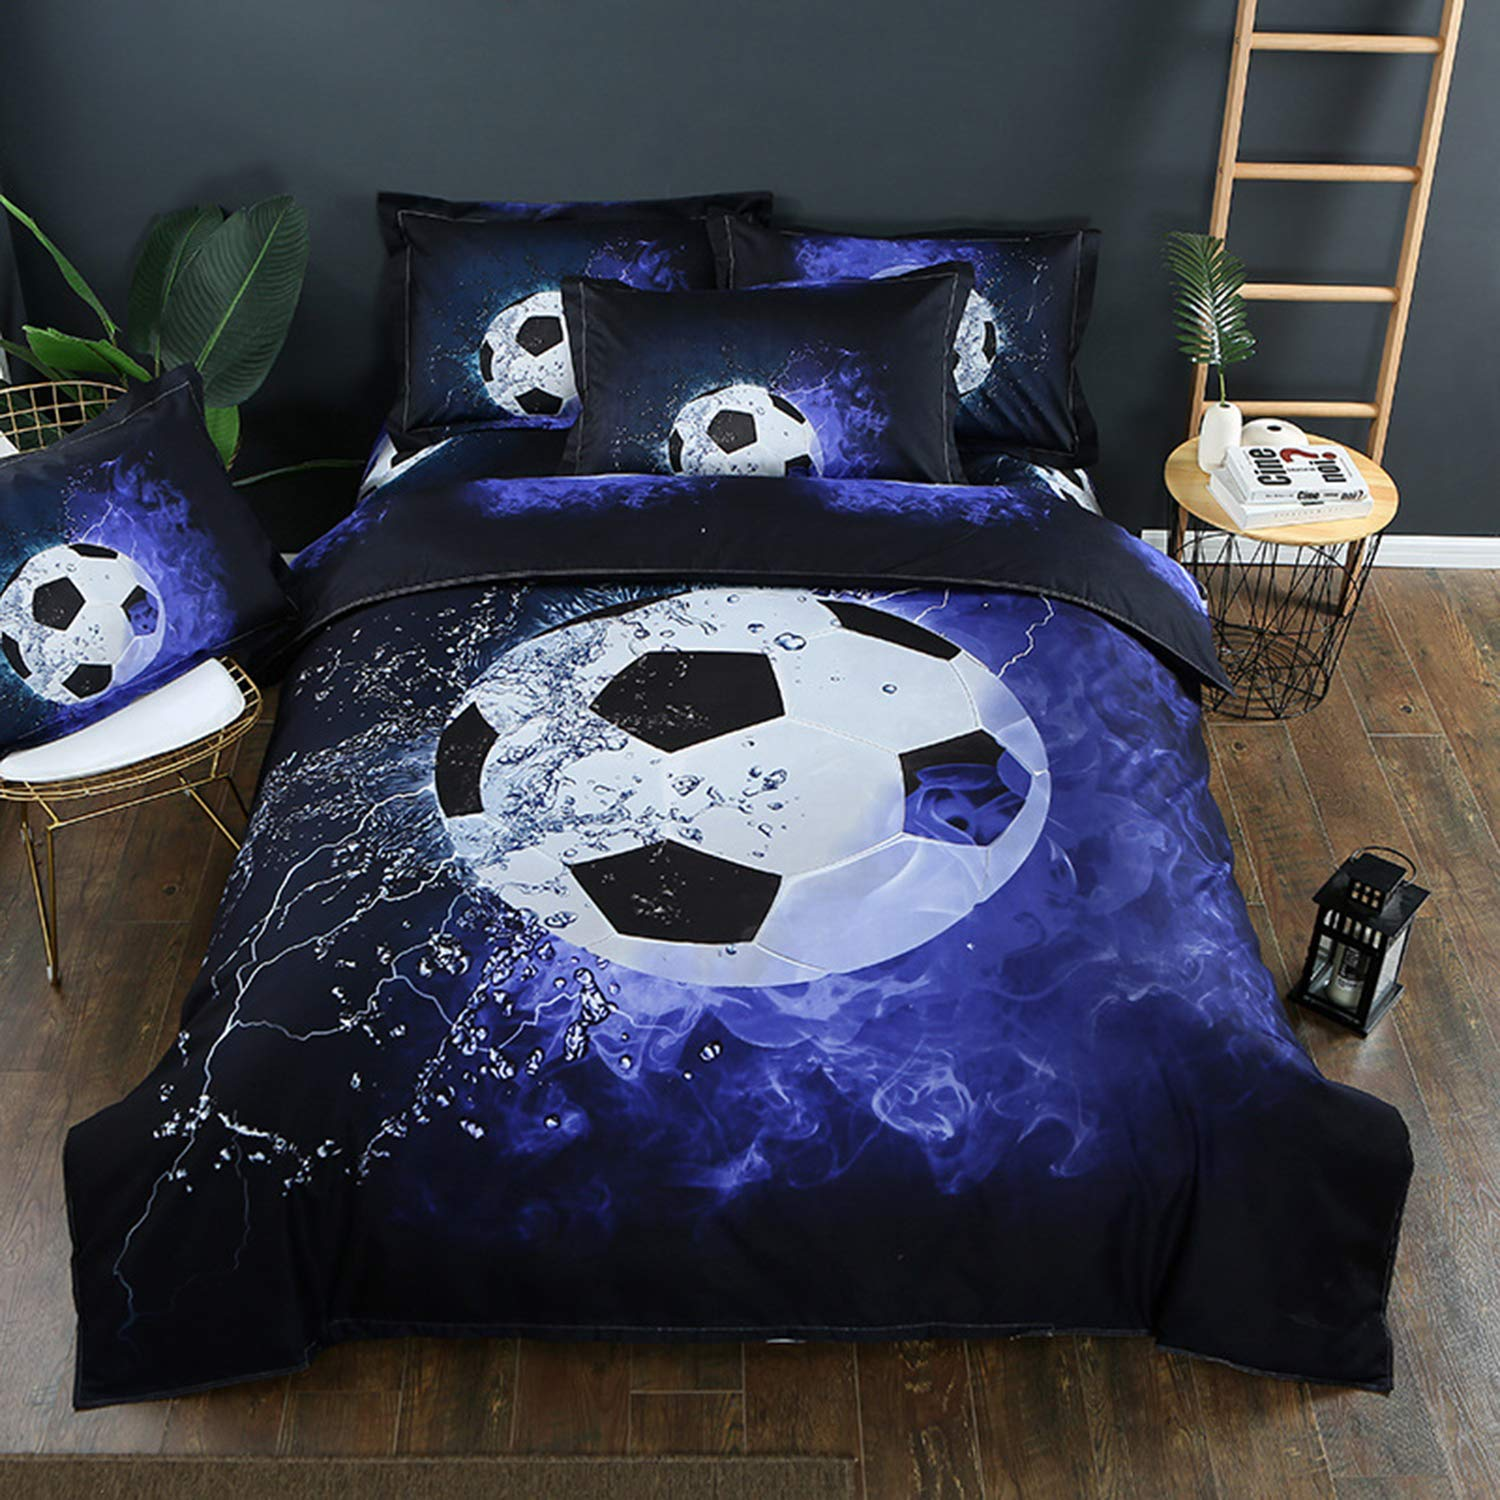 B Quilted Bedding, 3D Printing, Three Or Four Sets, Home Textile Soccer Basketball Pattern, Quilt Cover 180  210cm, Pillowcase 20  70cm